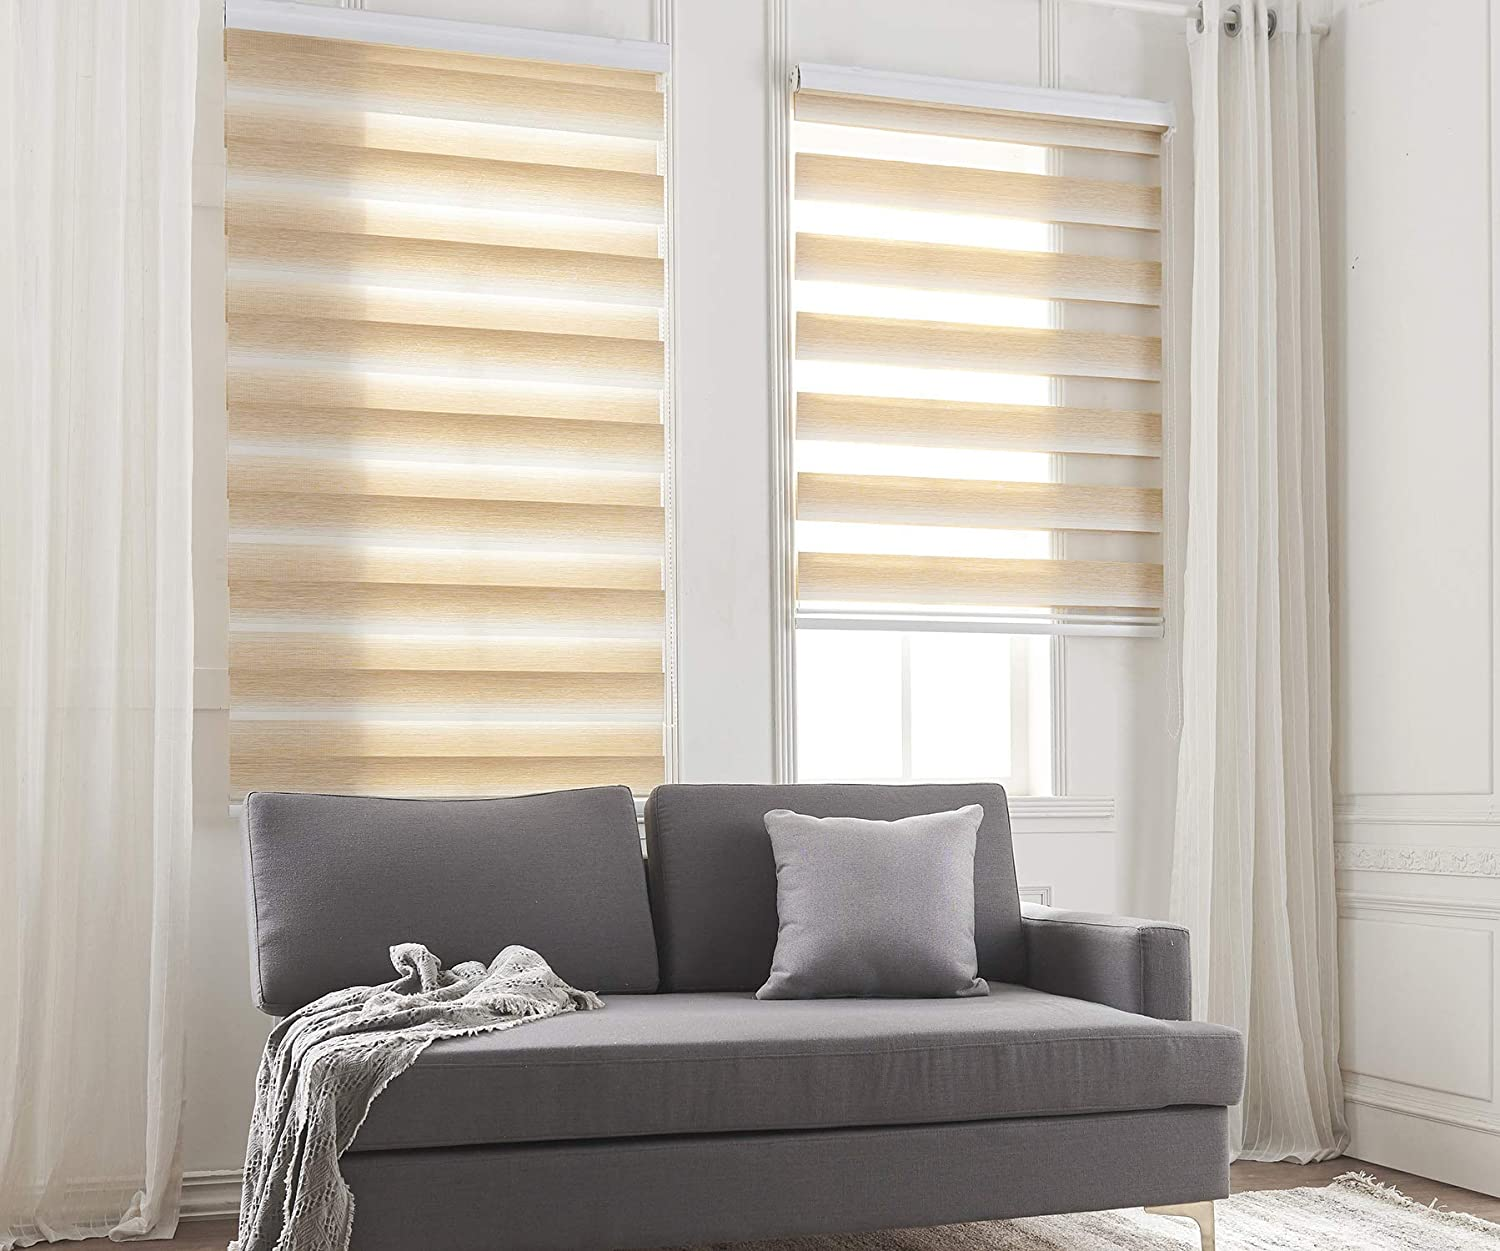 Images Of Living Room Window Blinds